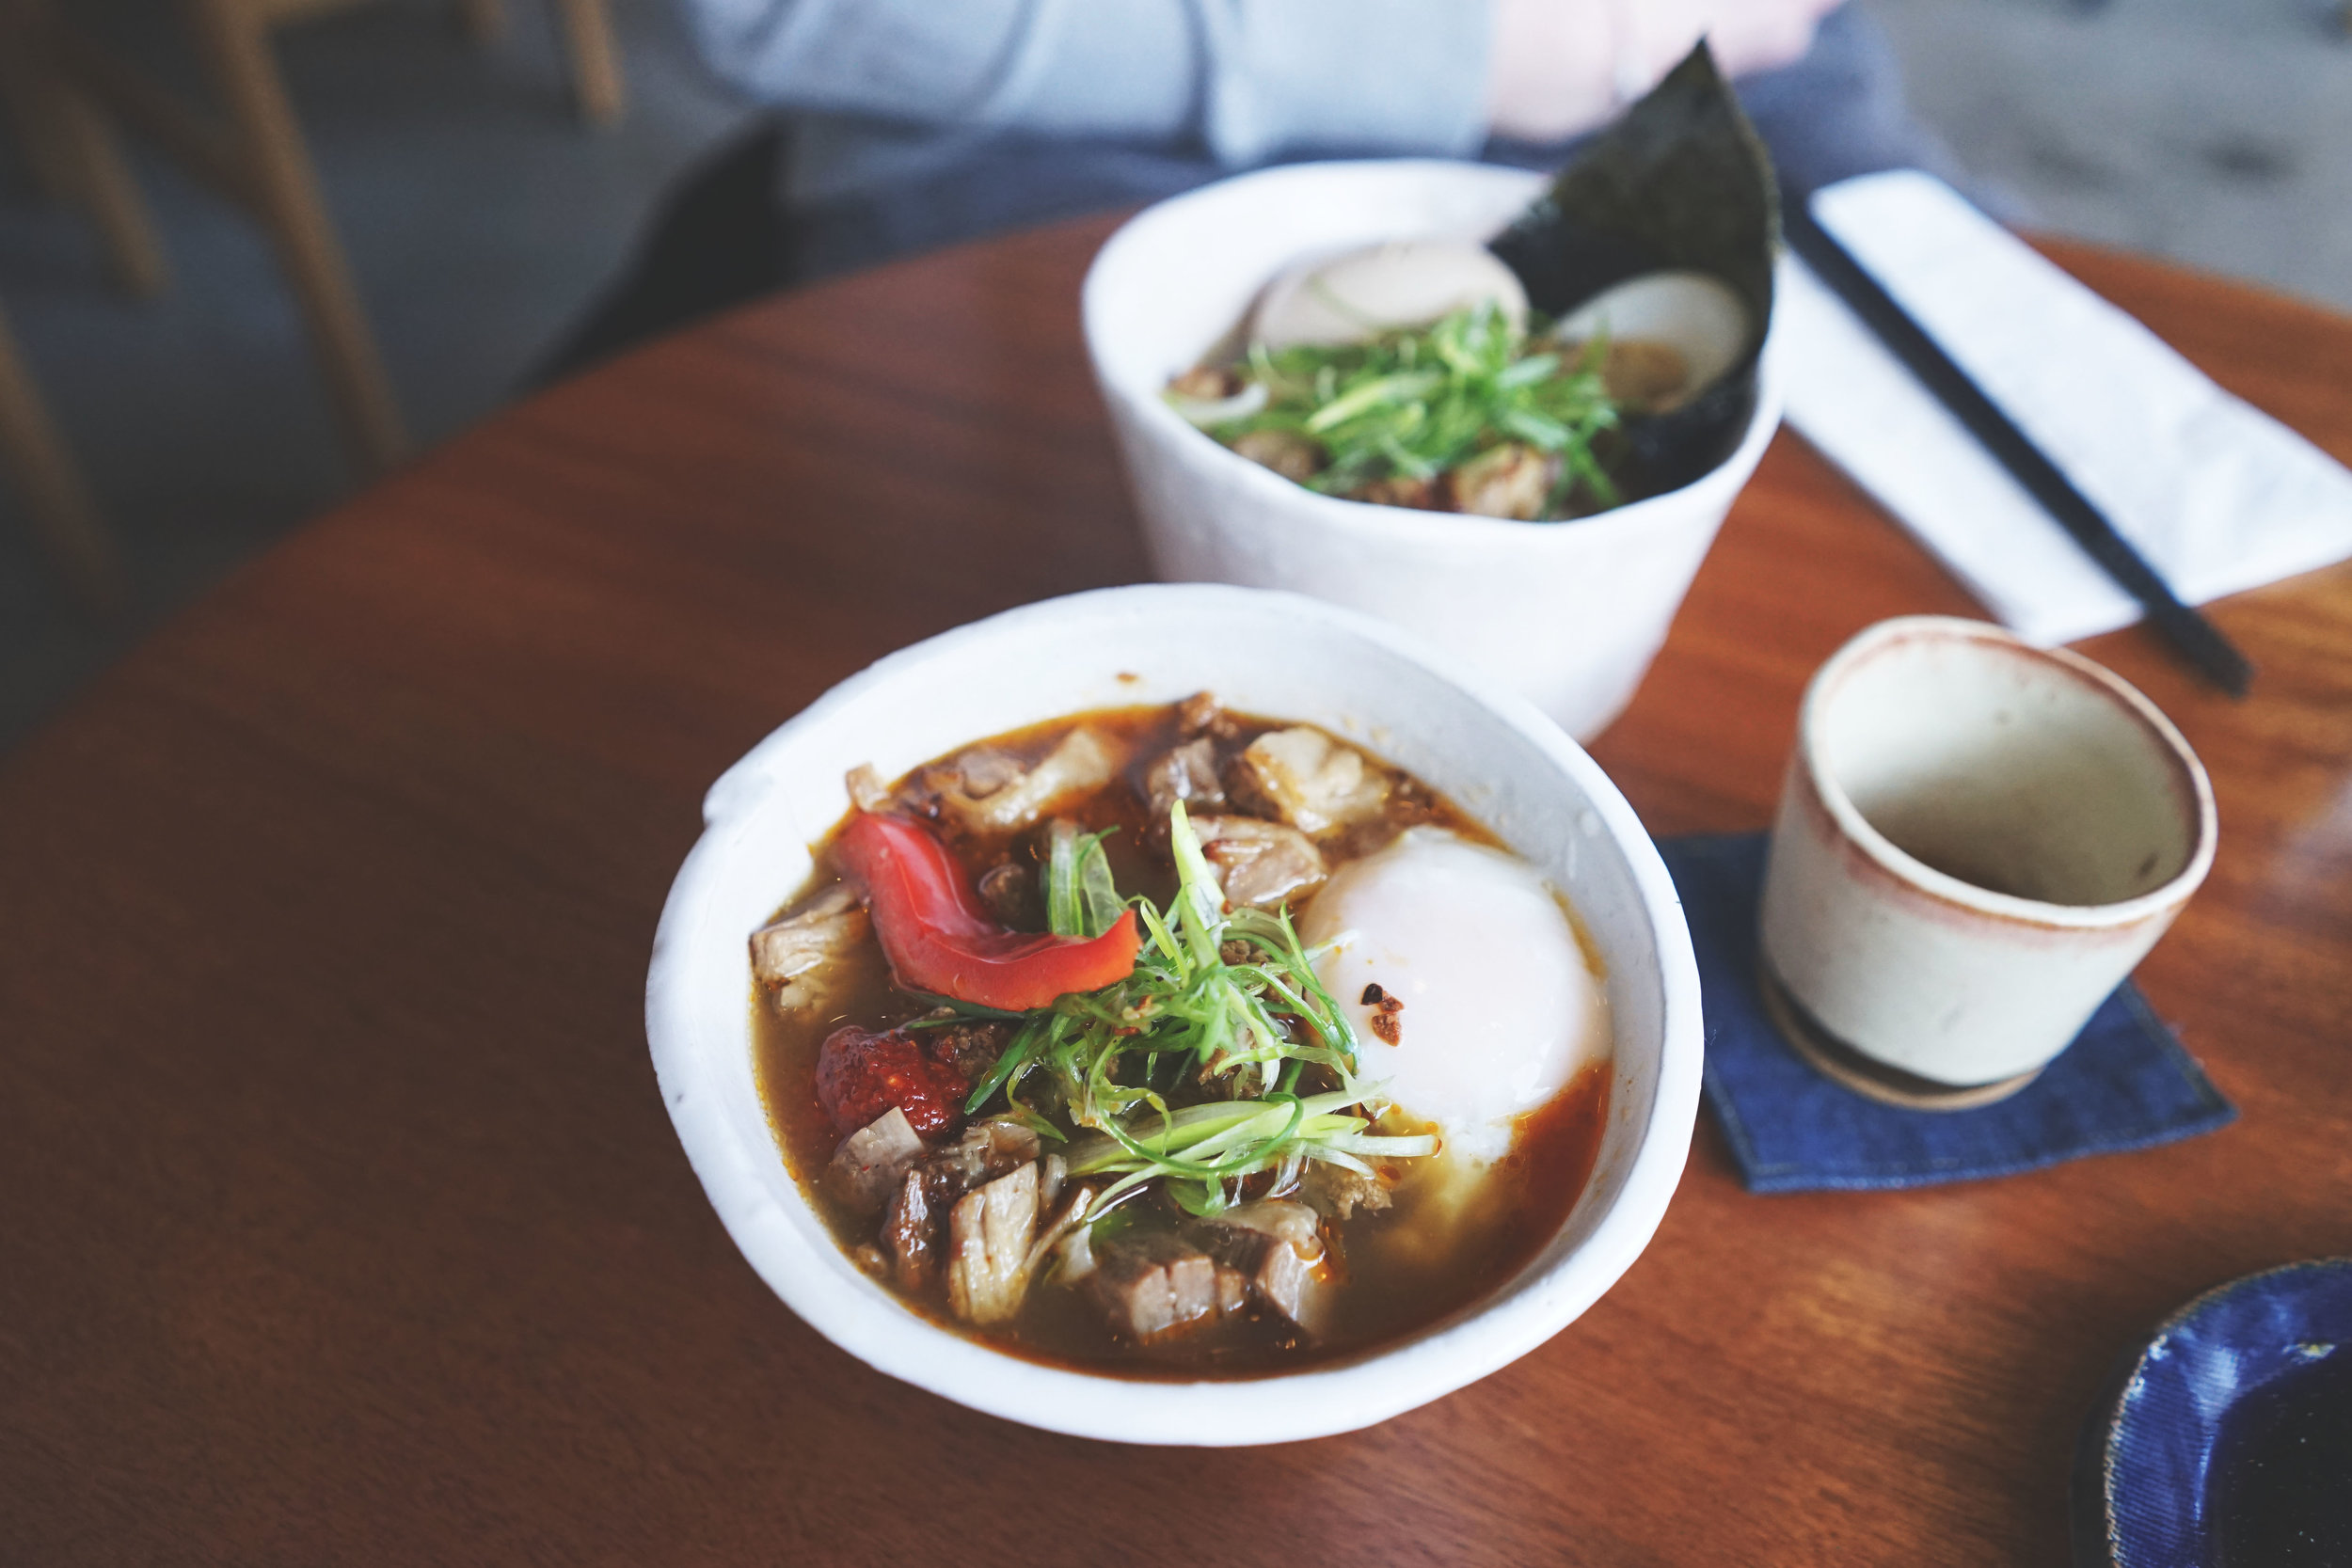 The small, spicy miso ramen, guaranteed to make your pores sweat and cry out in happiness.